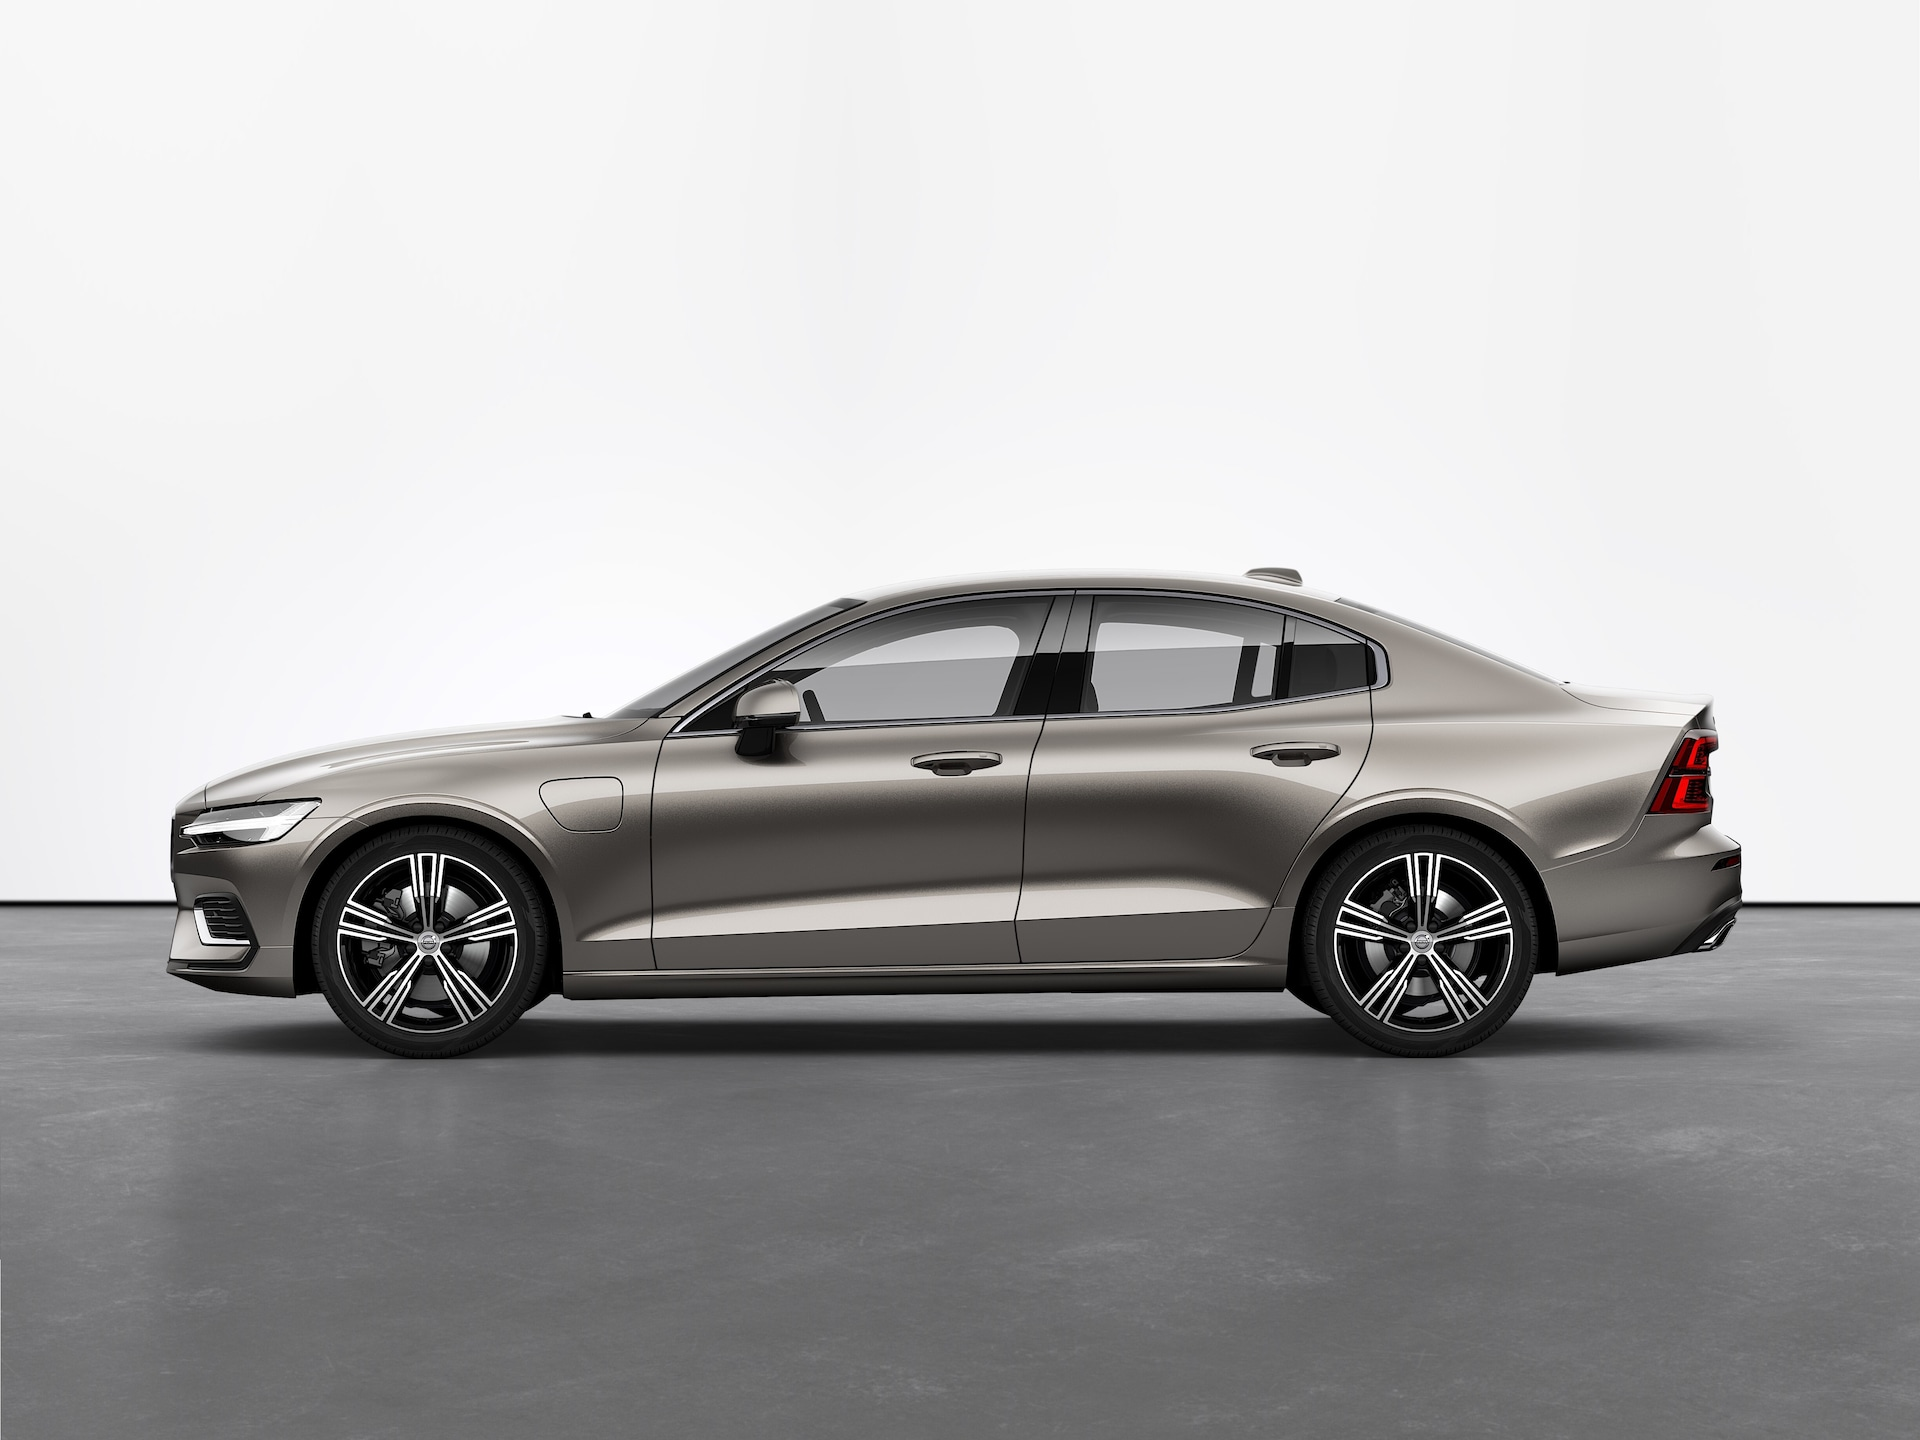 S60 Recharge Plug-in hybrid